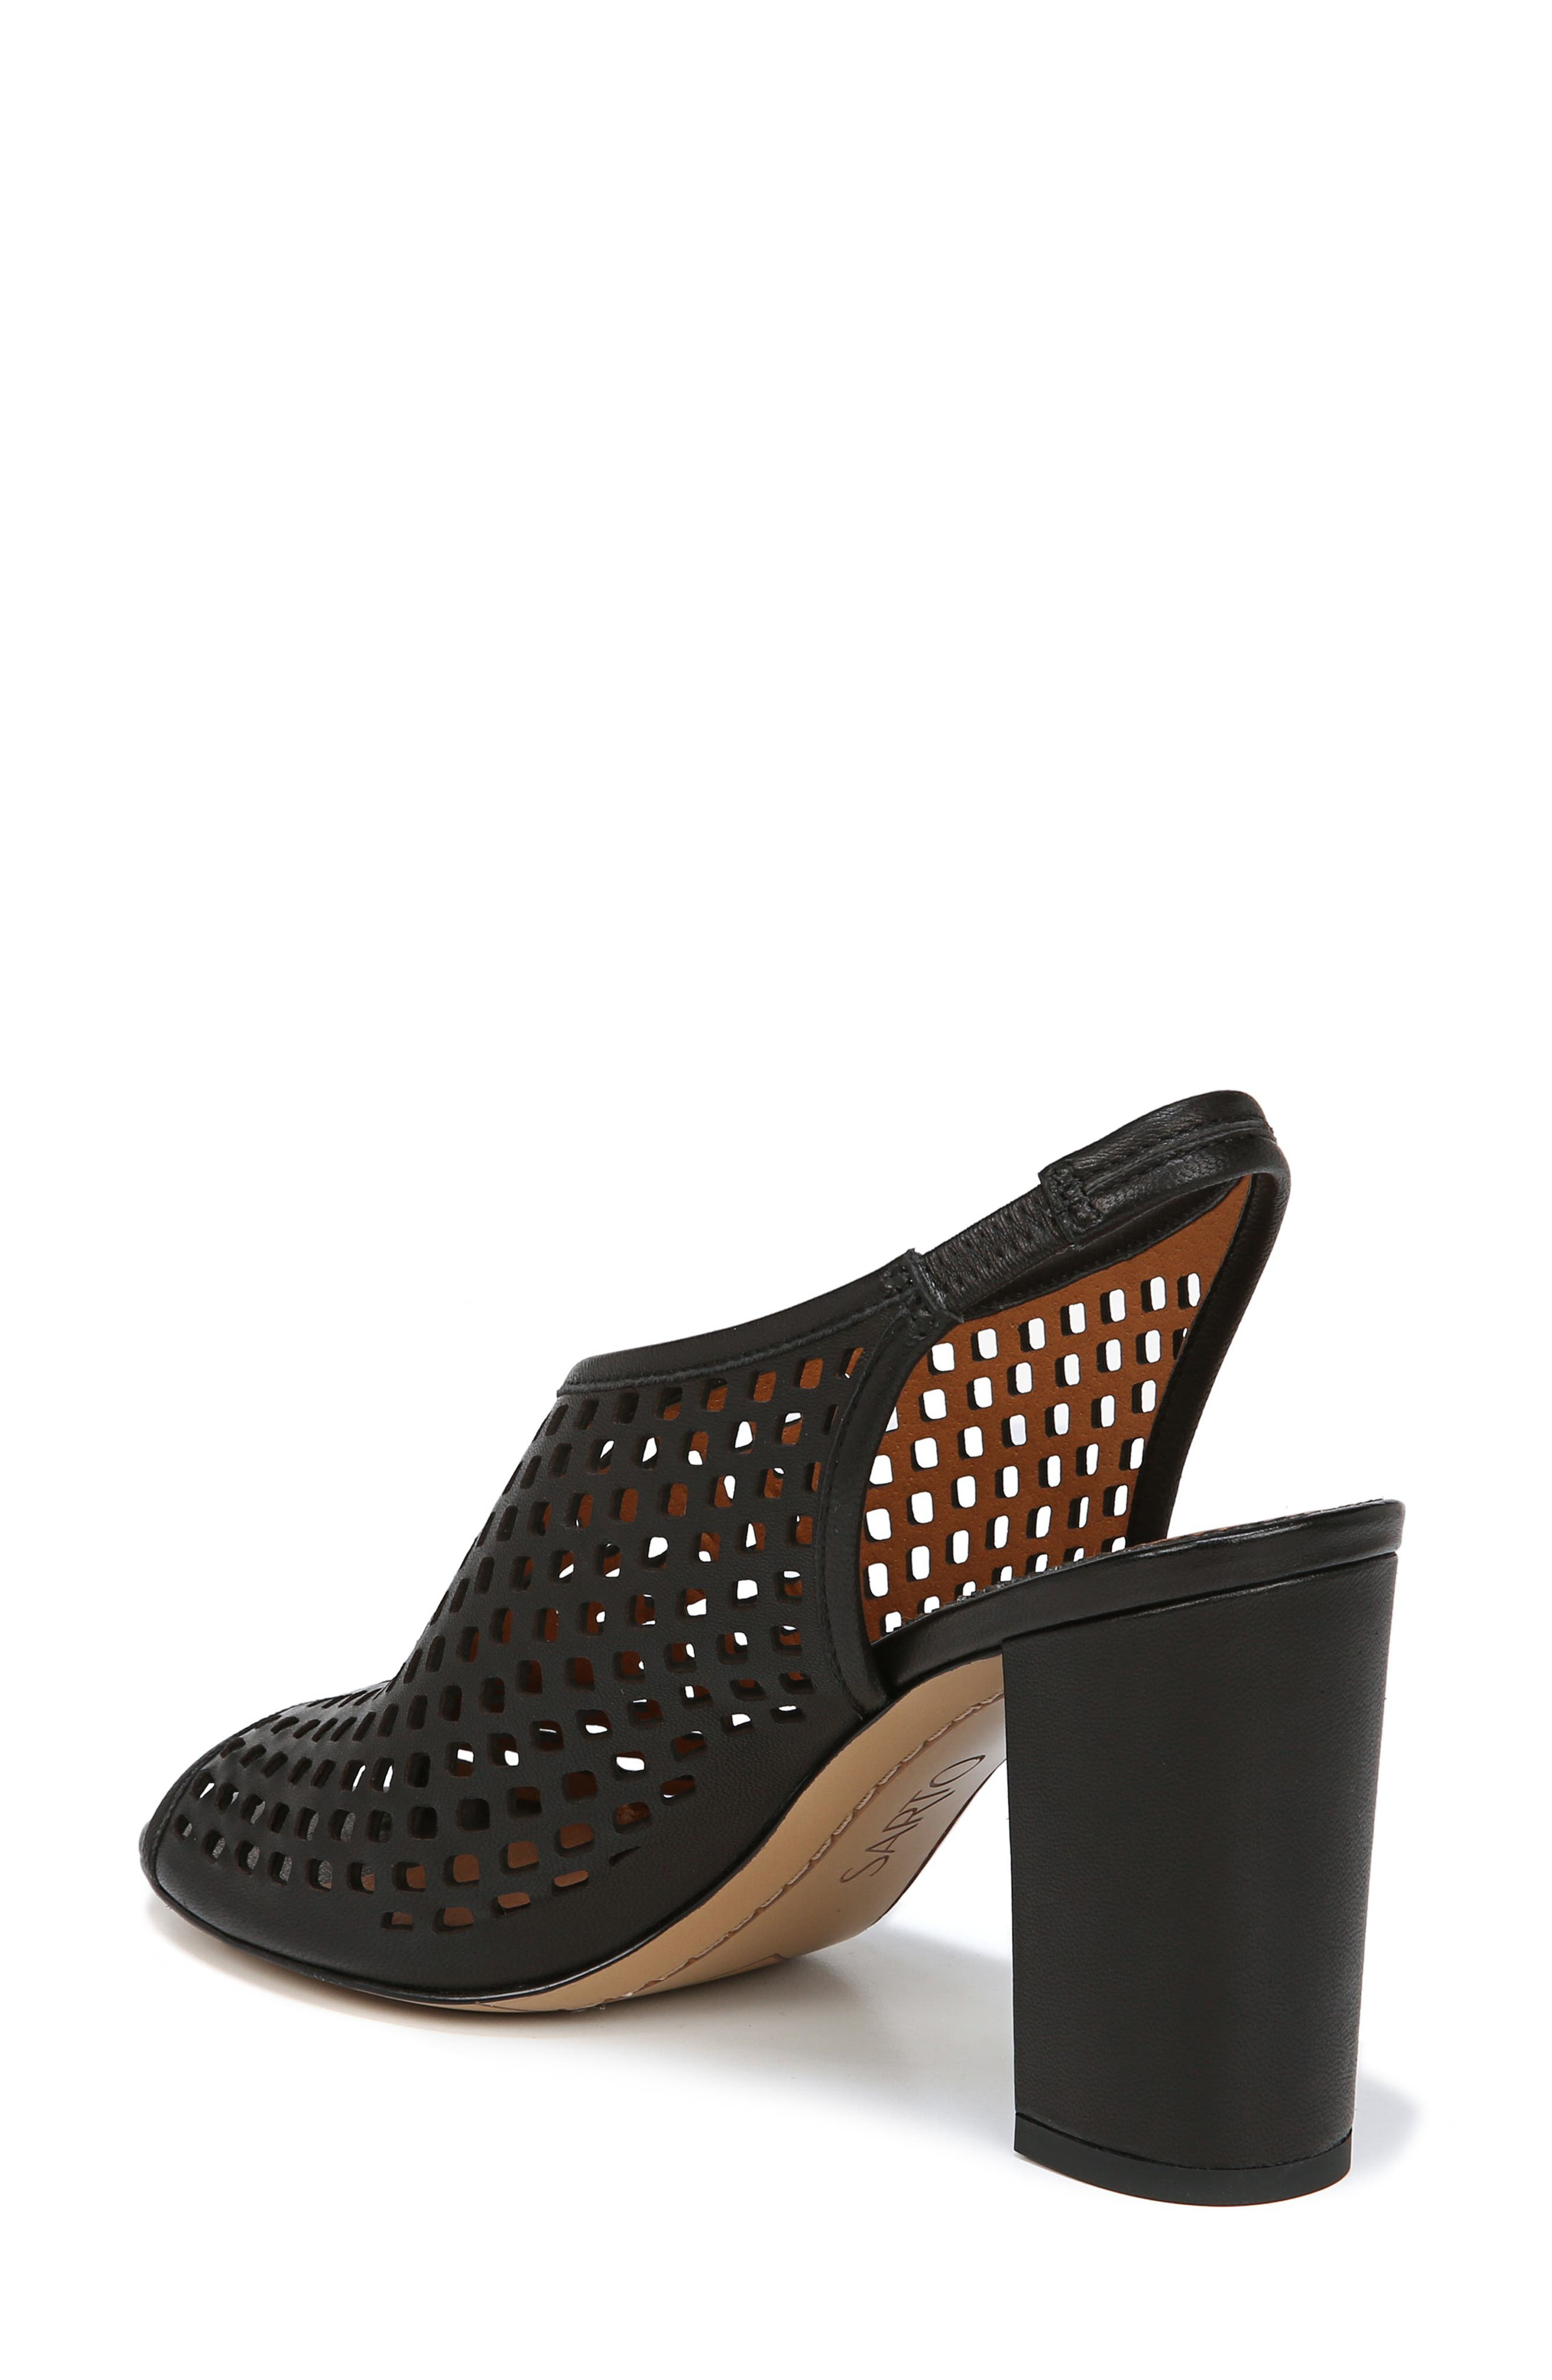 Osbourne Perforated Slingback Sandal,                             Alternate thumbnail 2, color,                             BLACK LEATHER